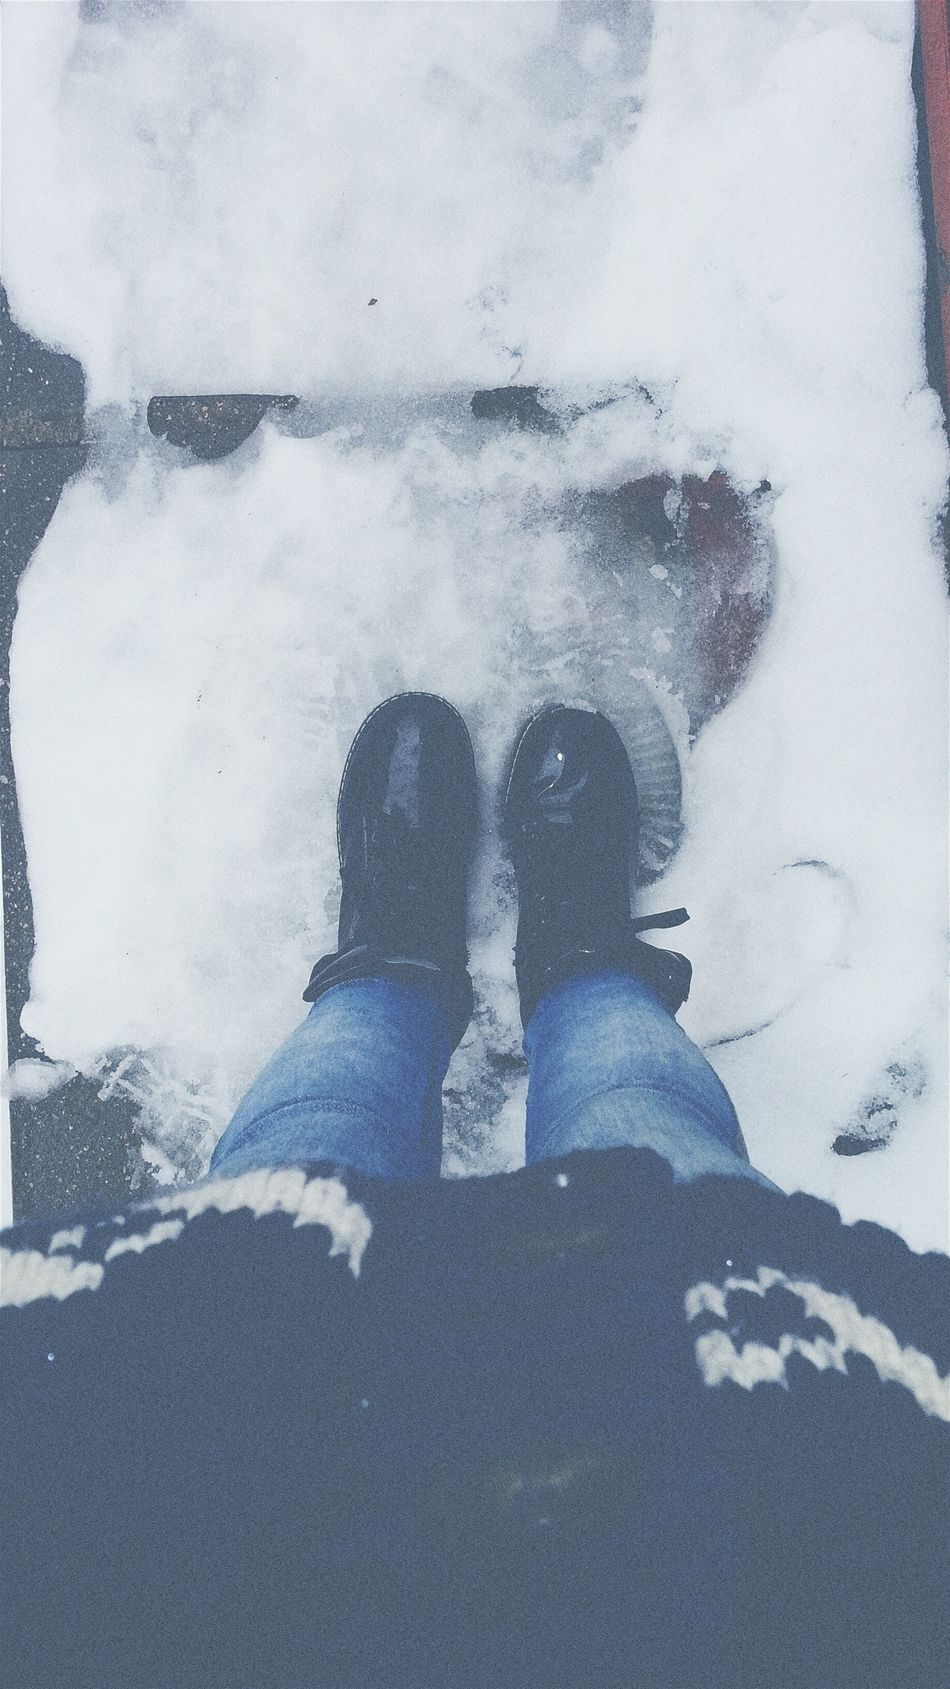 Heyo Boats Snow ❄ And Cold Winter ❄⛄